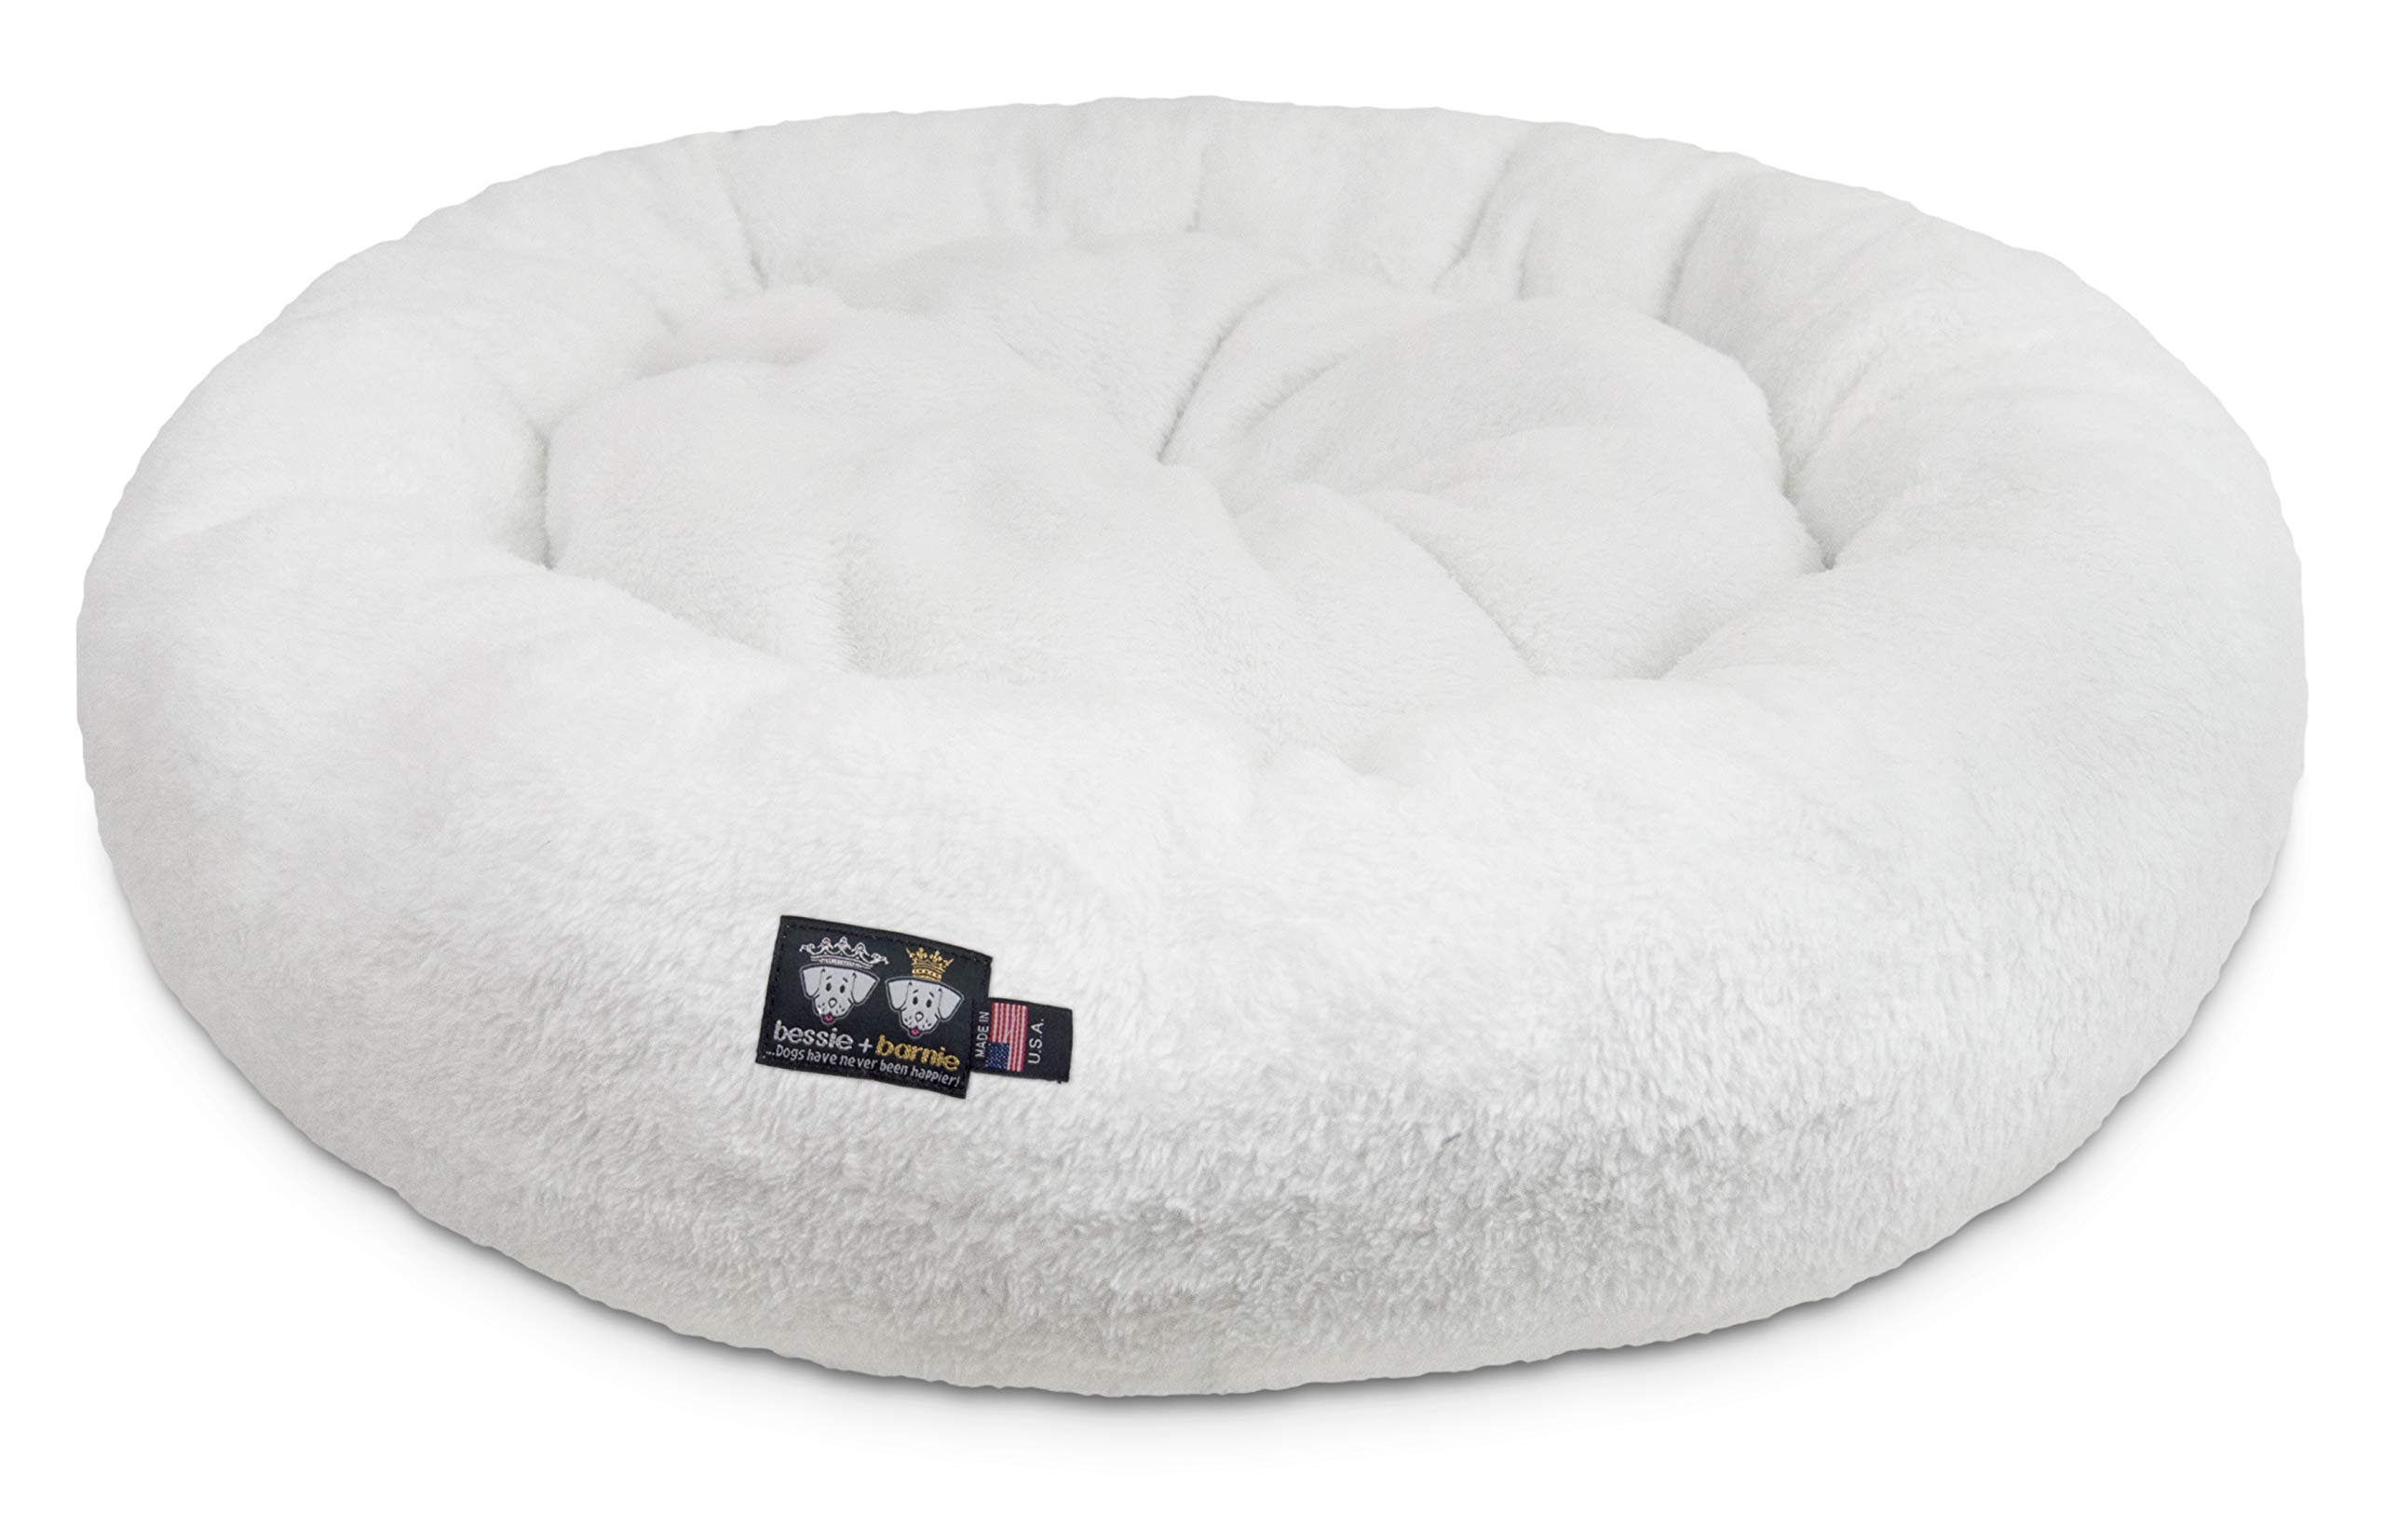 BESSIE AND BARNIE Ultra Plush Deluxe Comfort Pet Dog & Cat White Snuggle Bed (Multiple Sizes) - Machine Washable, Made in The USA, Reversible, Durable Soft Fabrics by BESSIE AND BARNIE (Image #1)